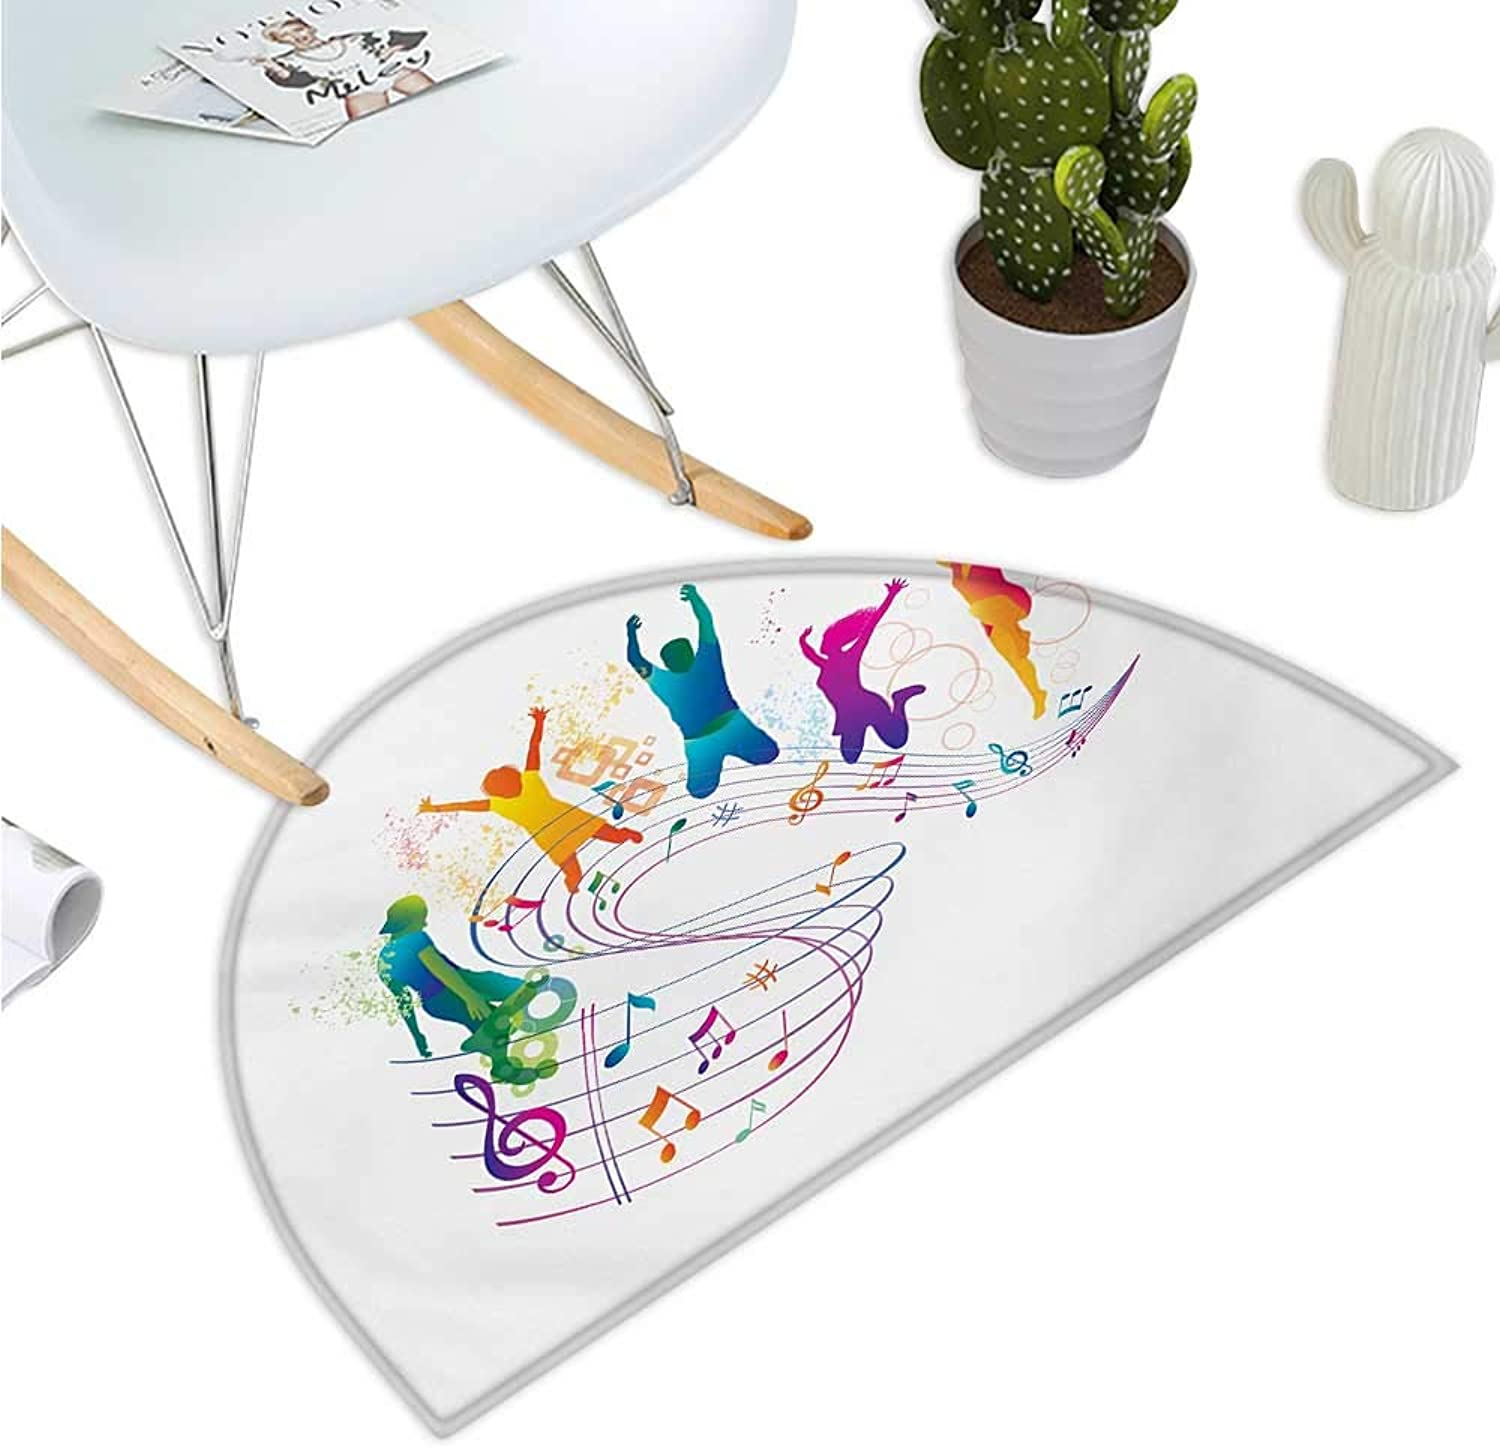 Youth Semicircle Doormat Active Dancing Jumping People Vibrant Silhouettes with Musical Notes Joyful Festival Entry Door Mat H 35.4  xD 53.1  Multicolor